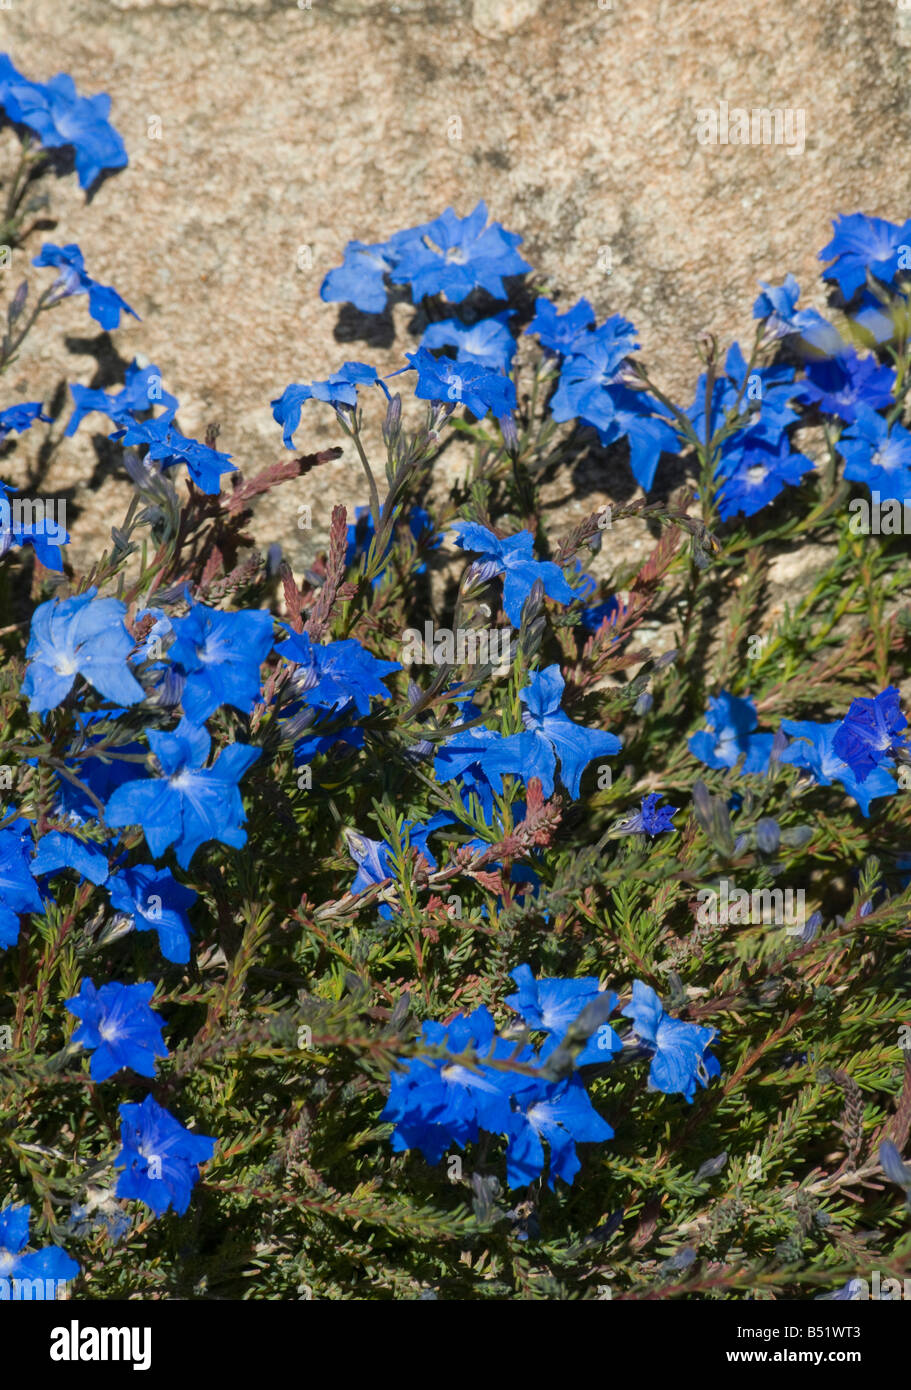 West Australian wildflower blue Laschenaultia - Stock Image